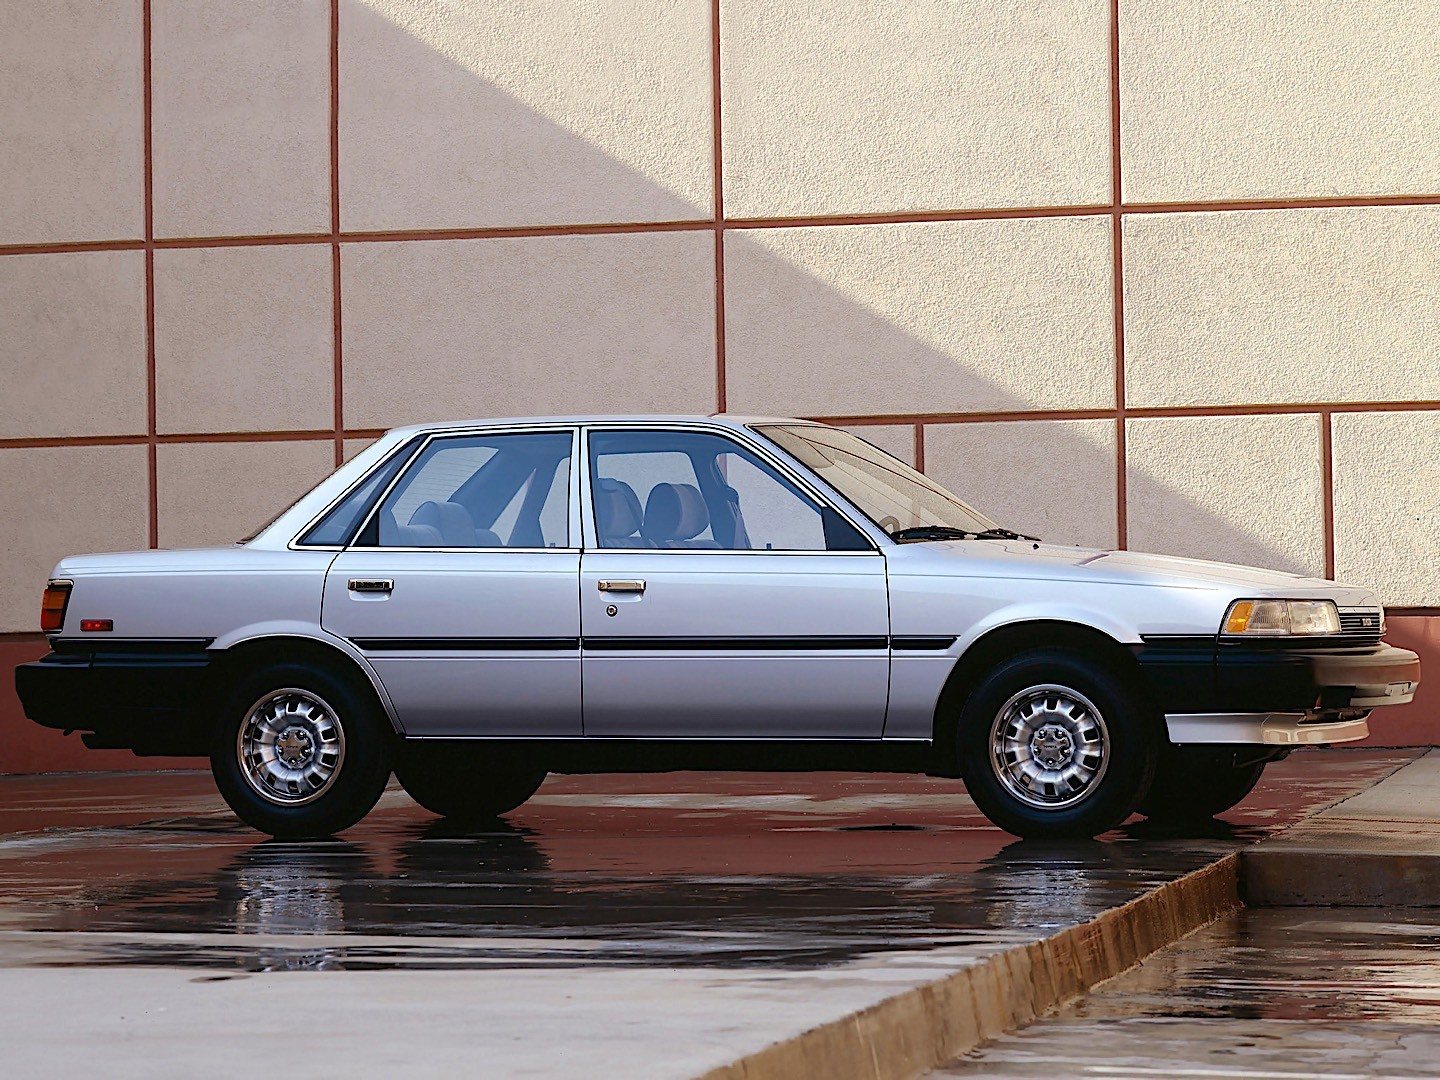 is the new camry all wheel drive alphard 3.5 q toyota specs & photos - 1987, 1988, 1989, 1990, 1991 ...